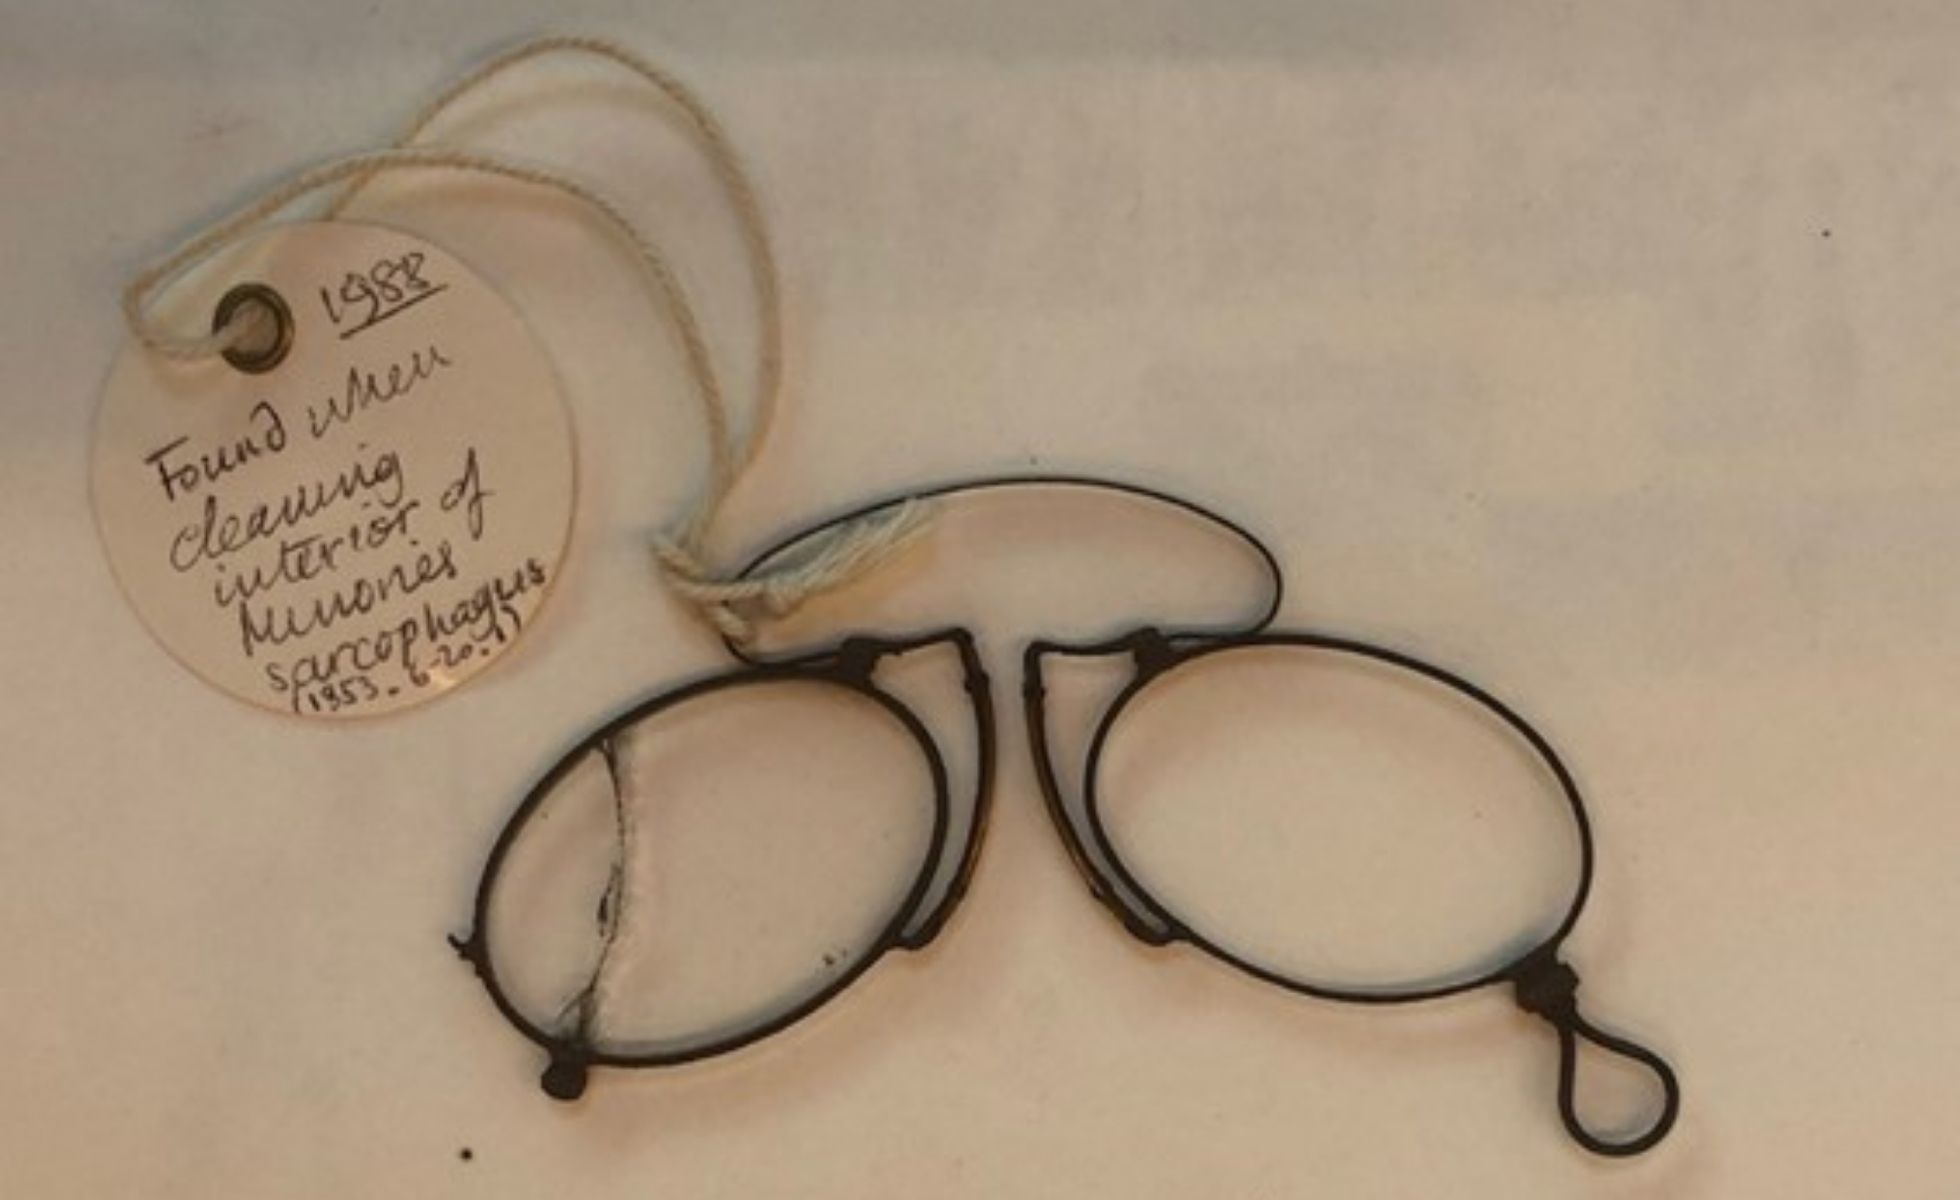 Photograph showing wire spectacles with a tag attached